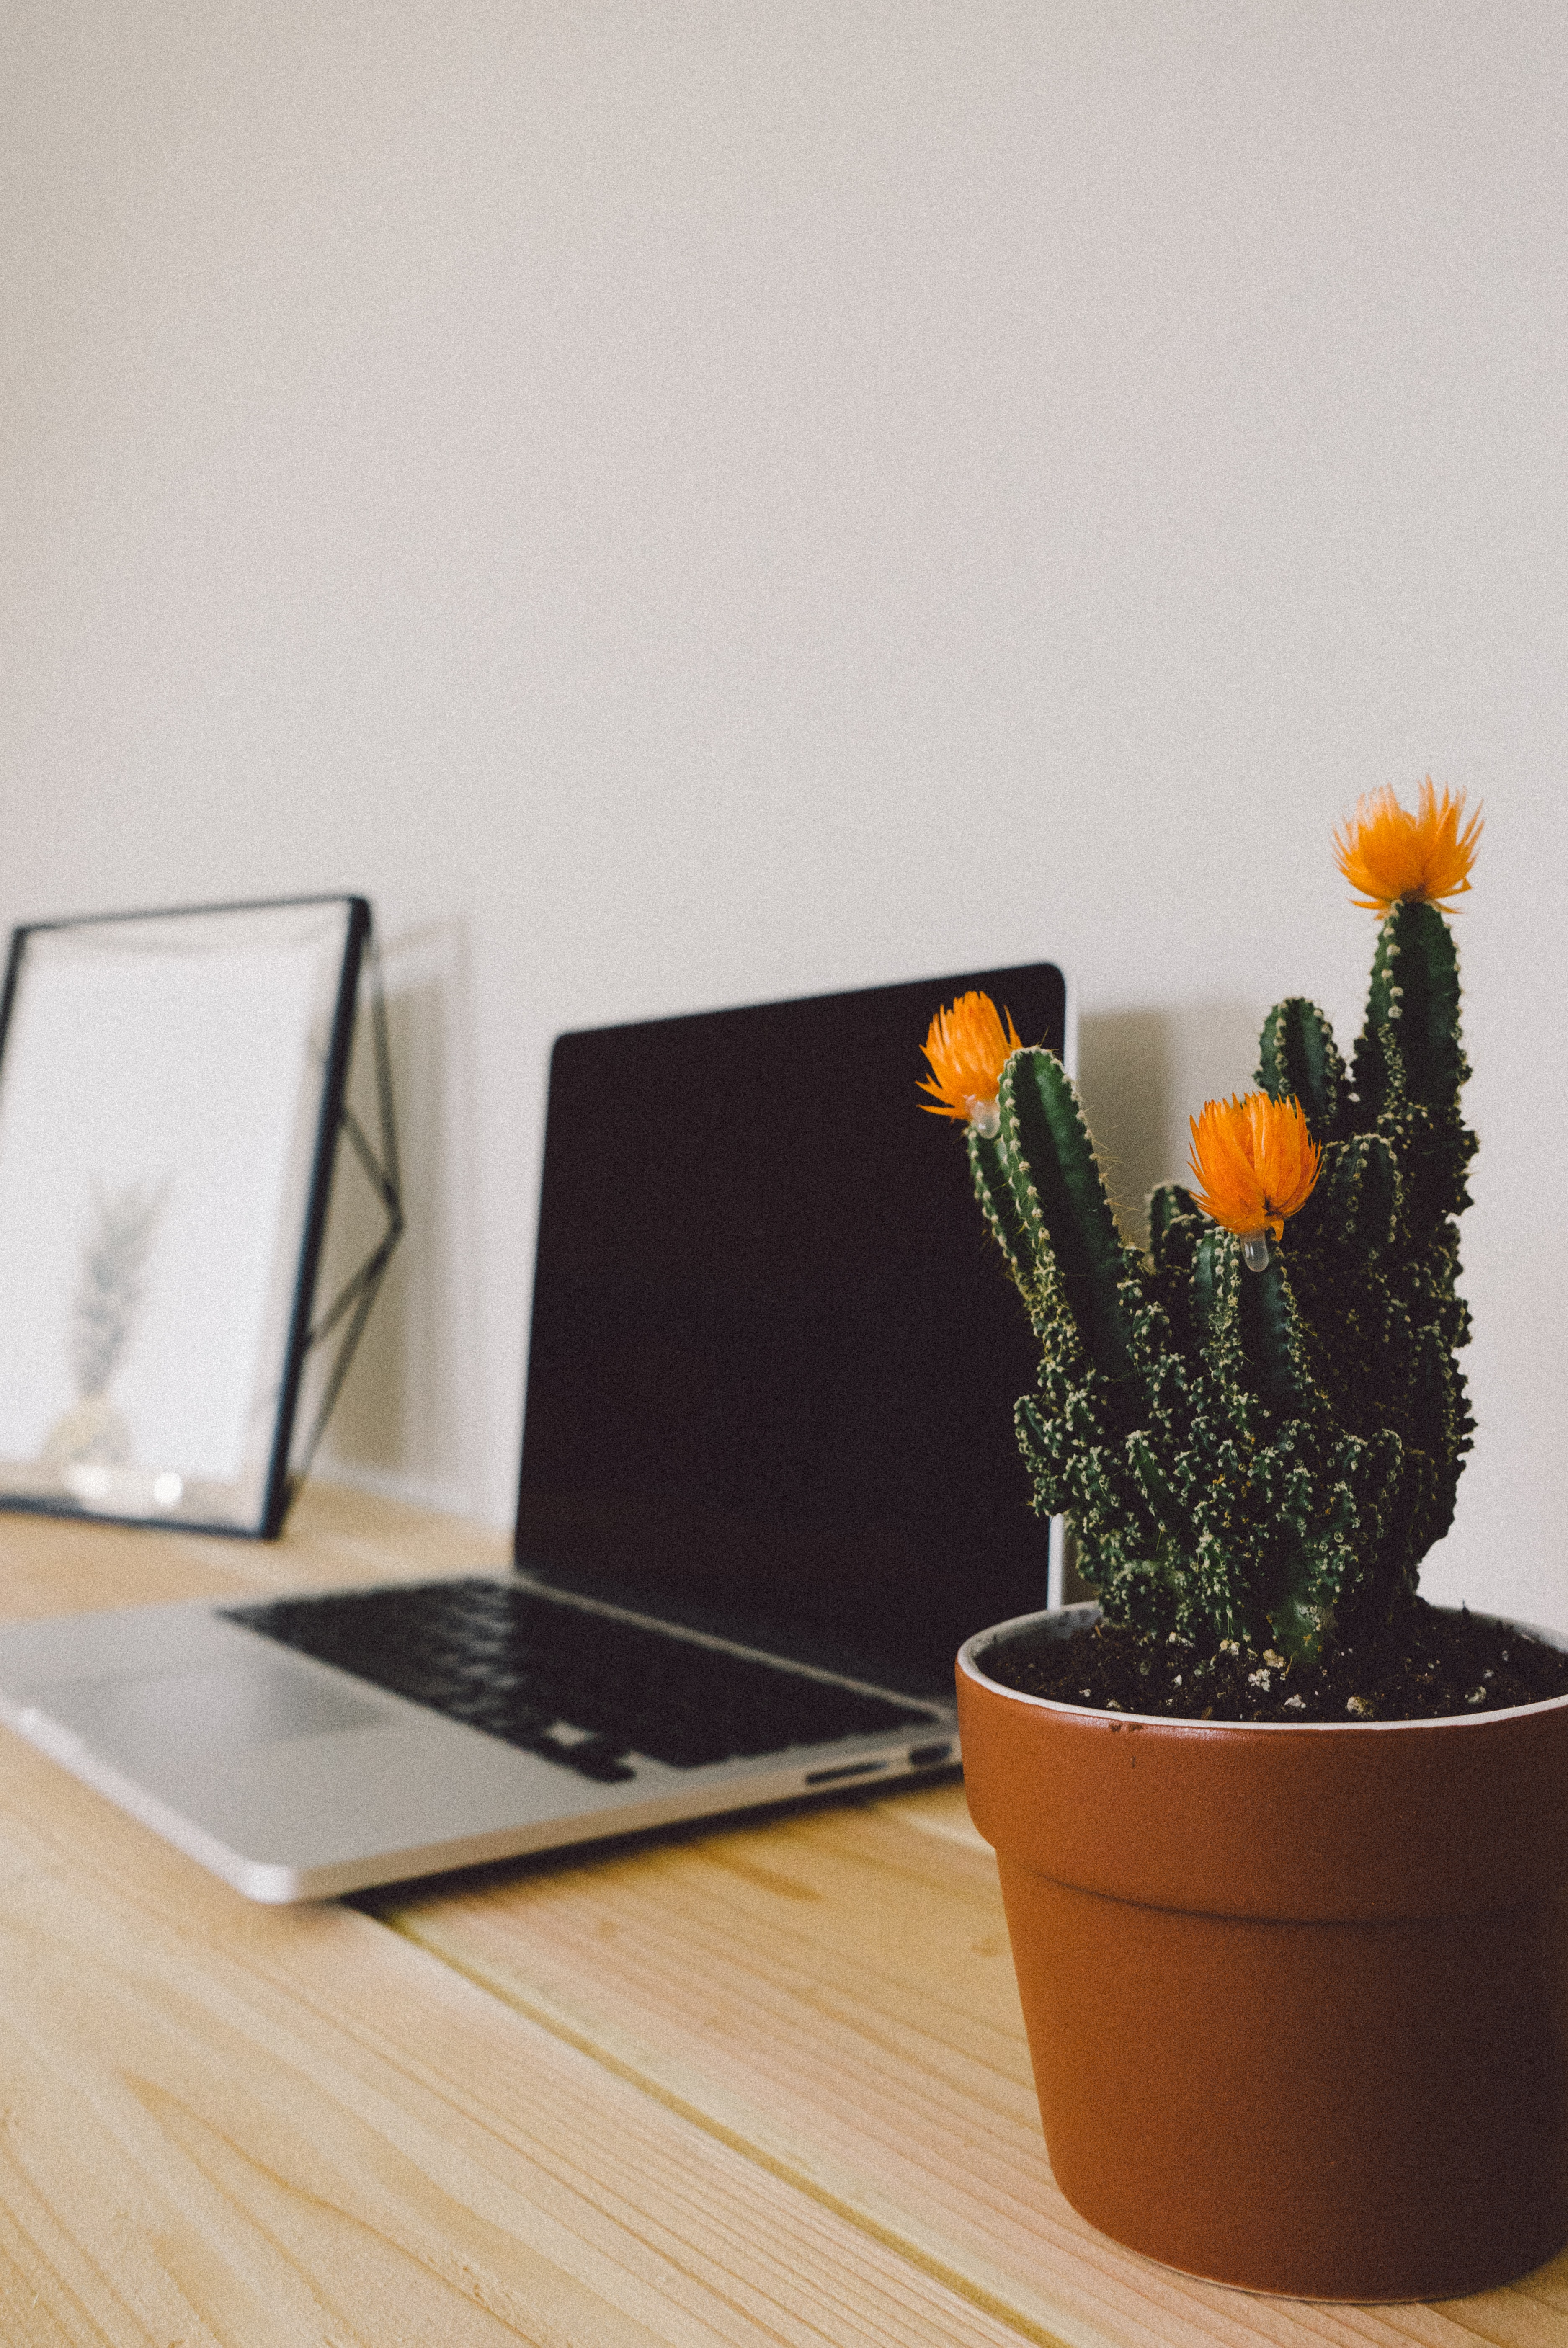 Laptop, artwork and a cactus on a wooden table in perspective